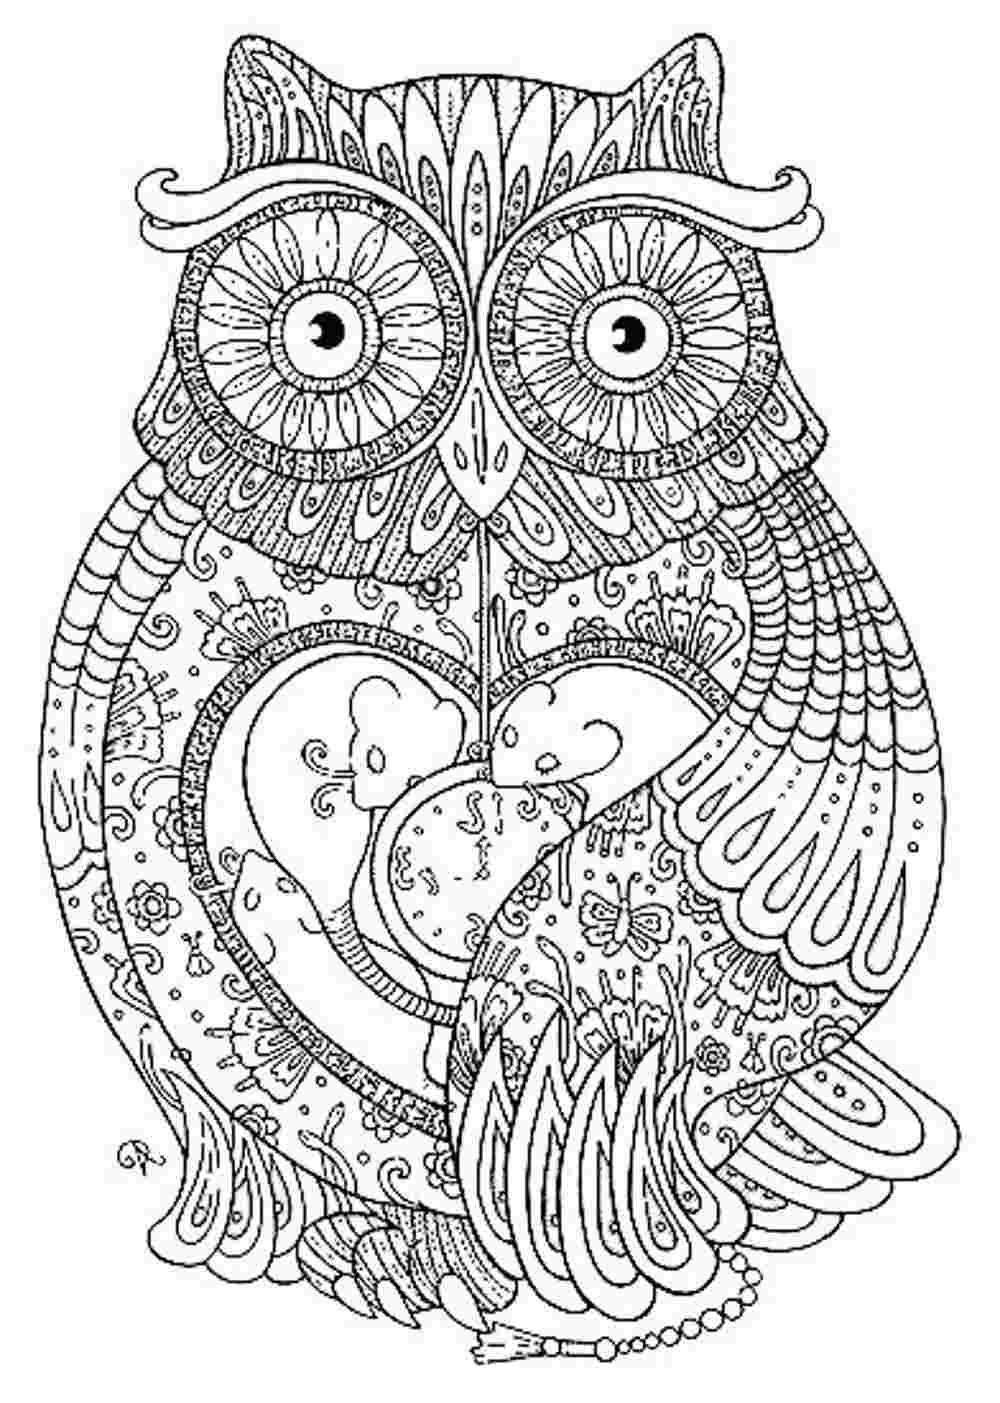 animal mandala coloring pages - Challenging Dragon Coloring Pages